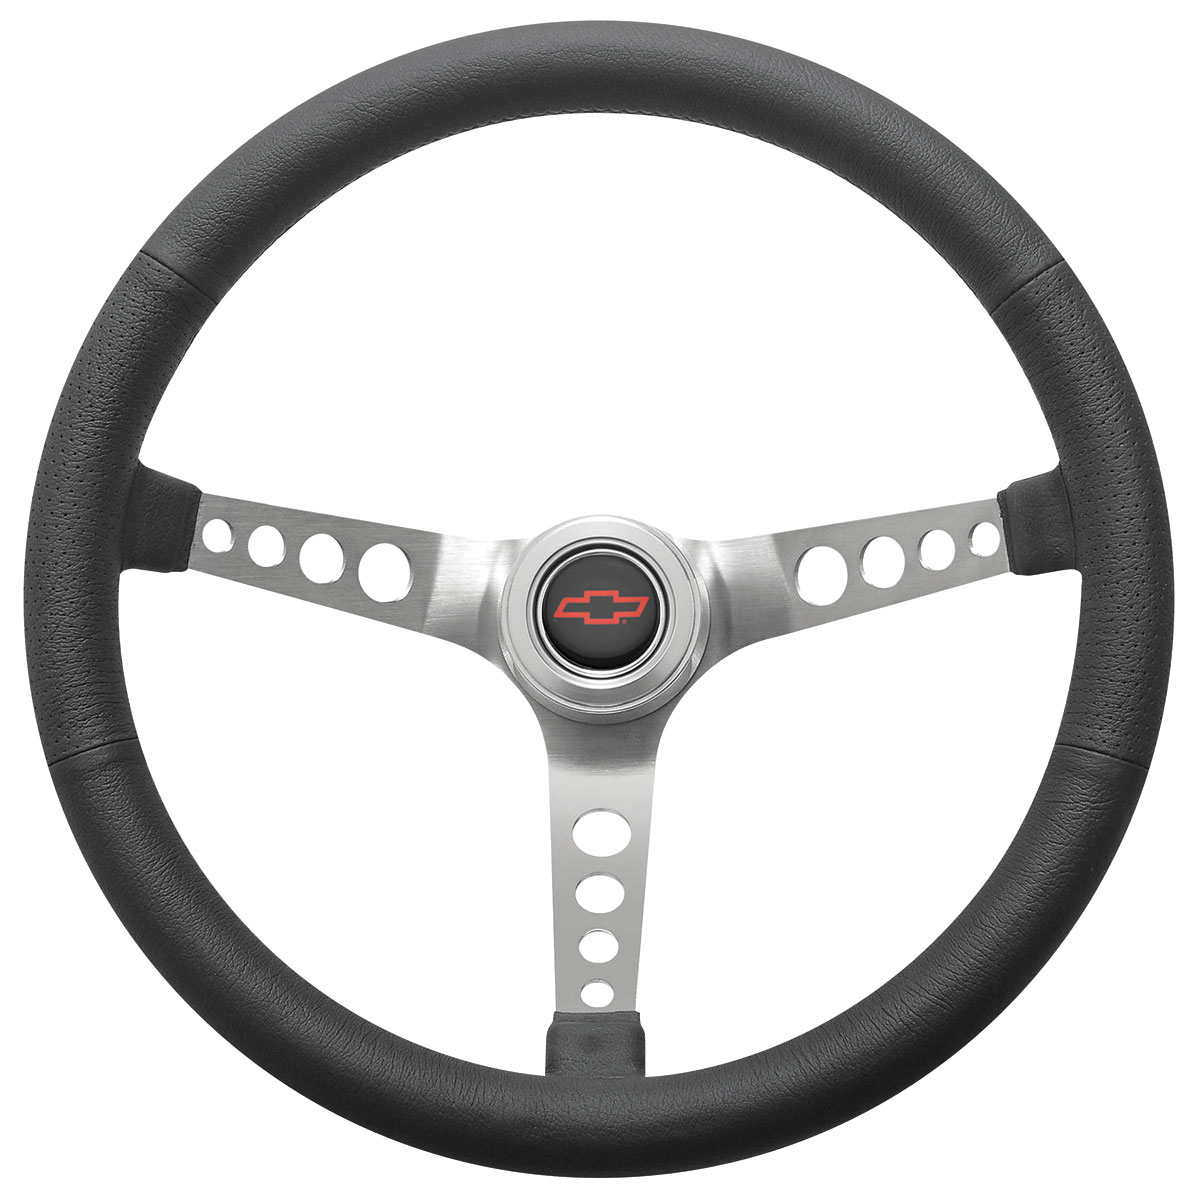 Photo of Steering Wheel Kit, Retro Wheel With Holes Hi-Rise Cap - Polished with red Bowtie center